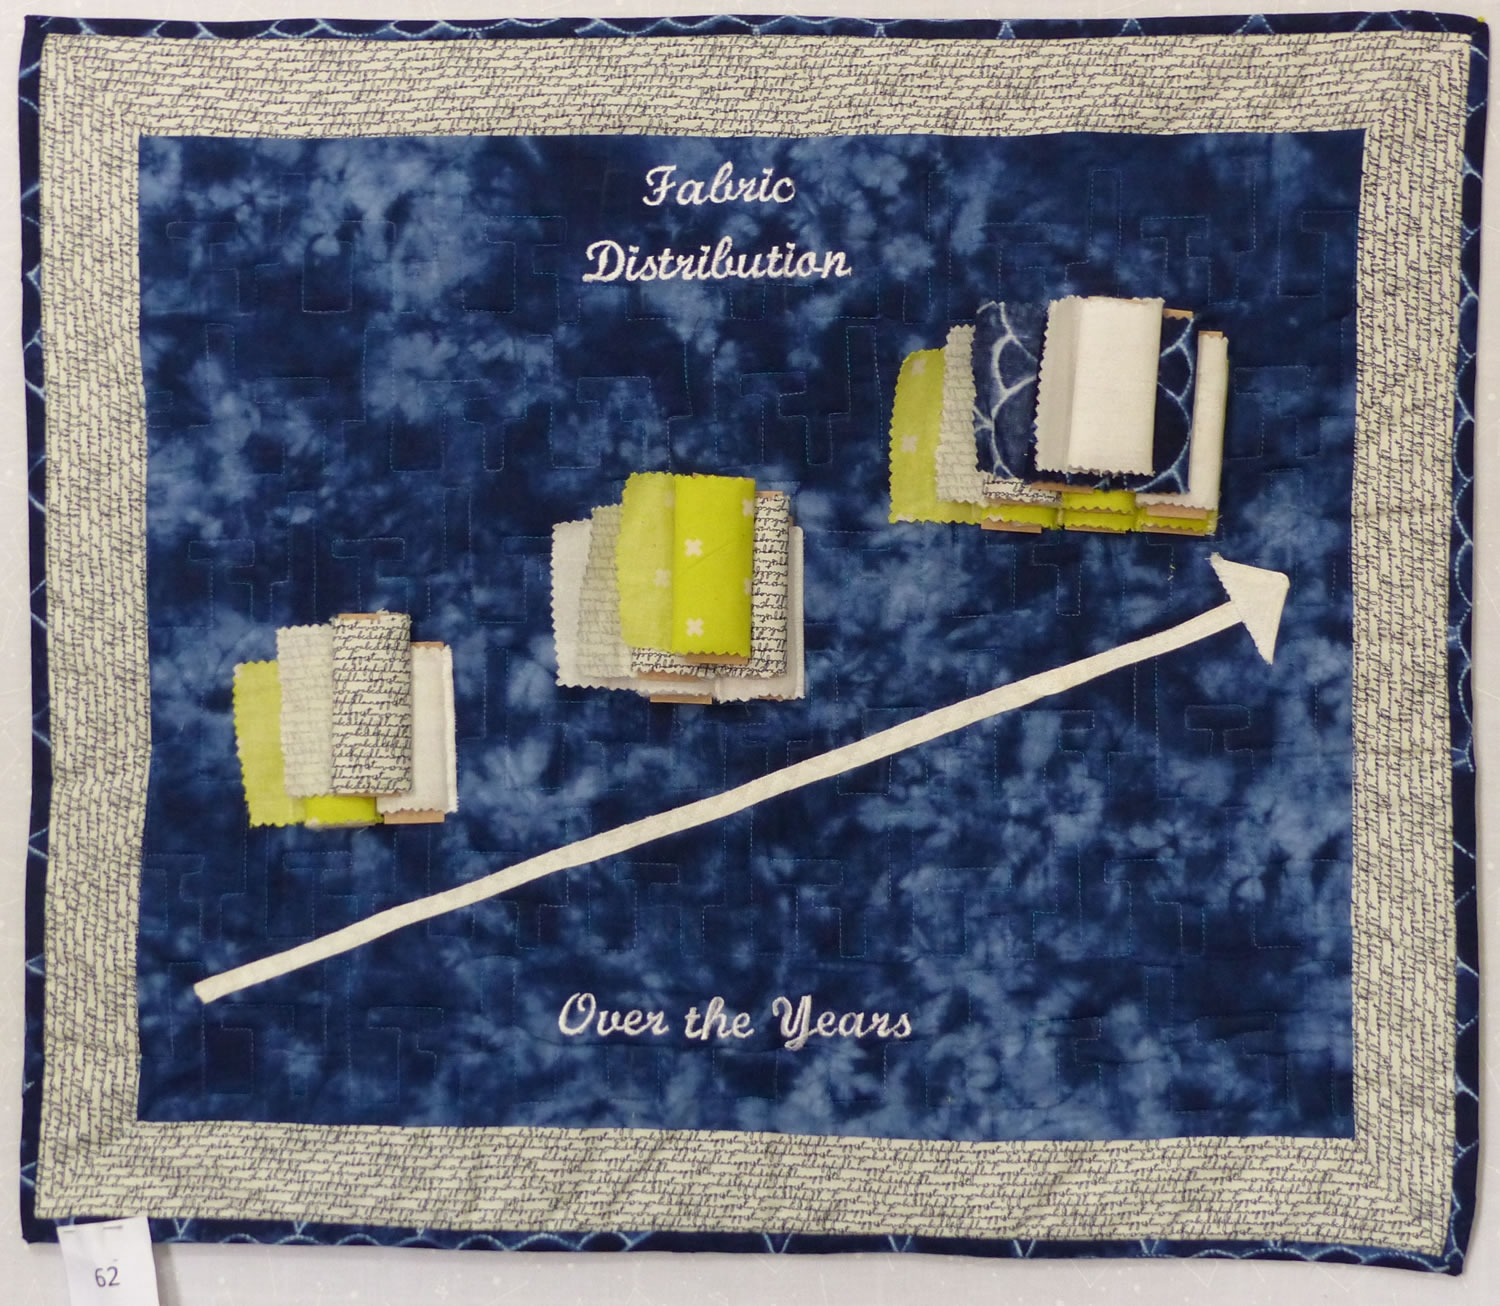 Fabric Distribution over the Years